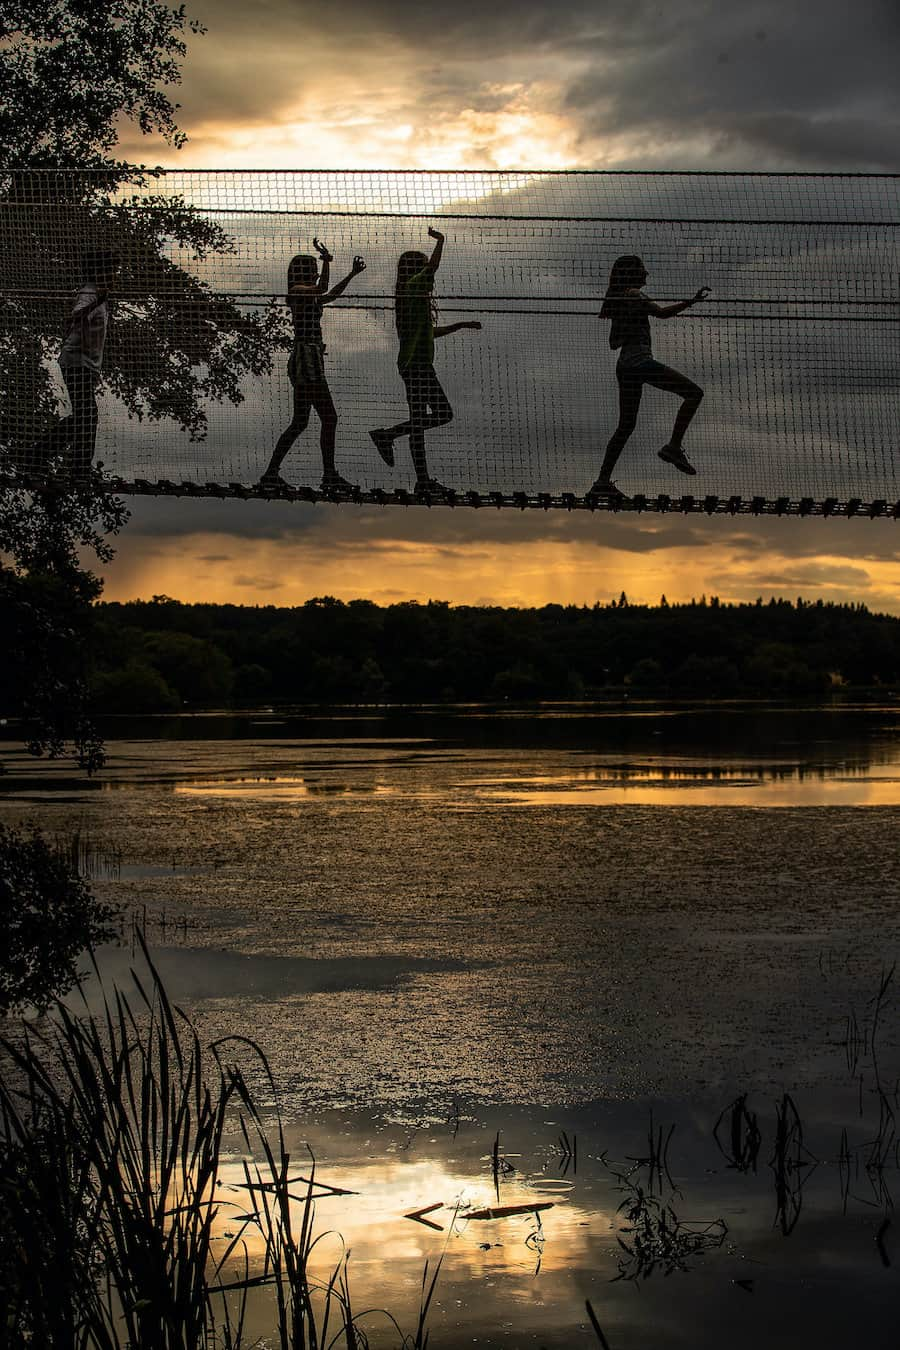 children on a rope bridge at sunset, at Skelf Island, Castle Howard